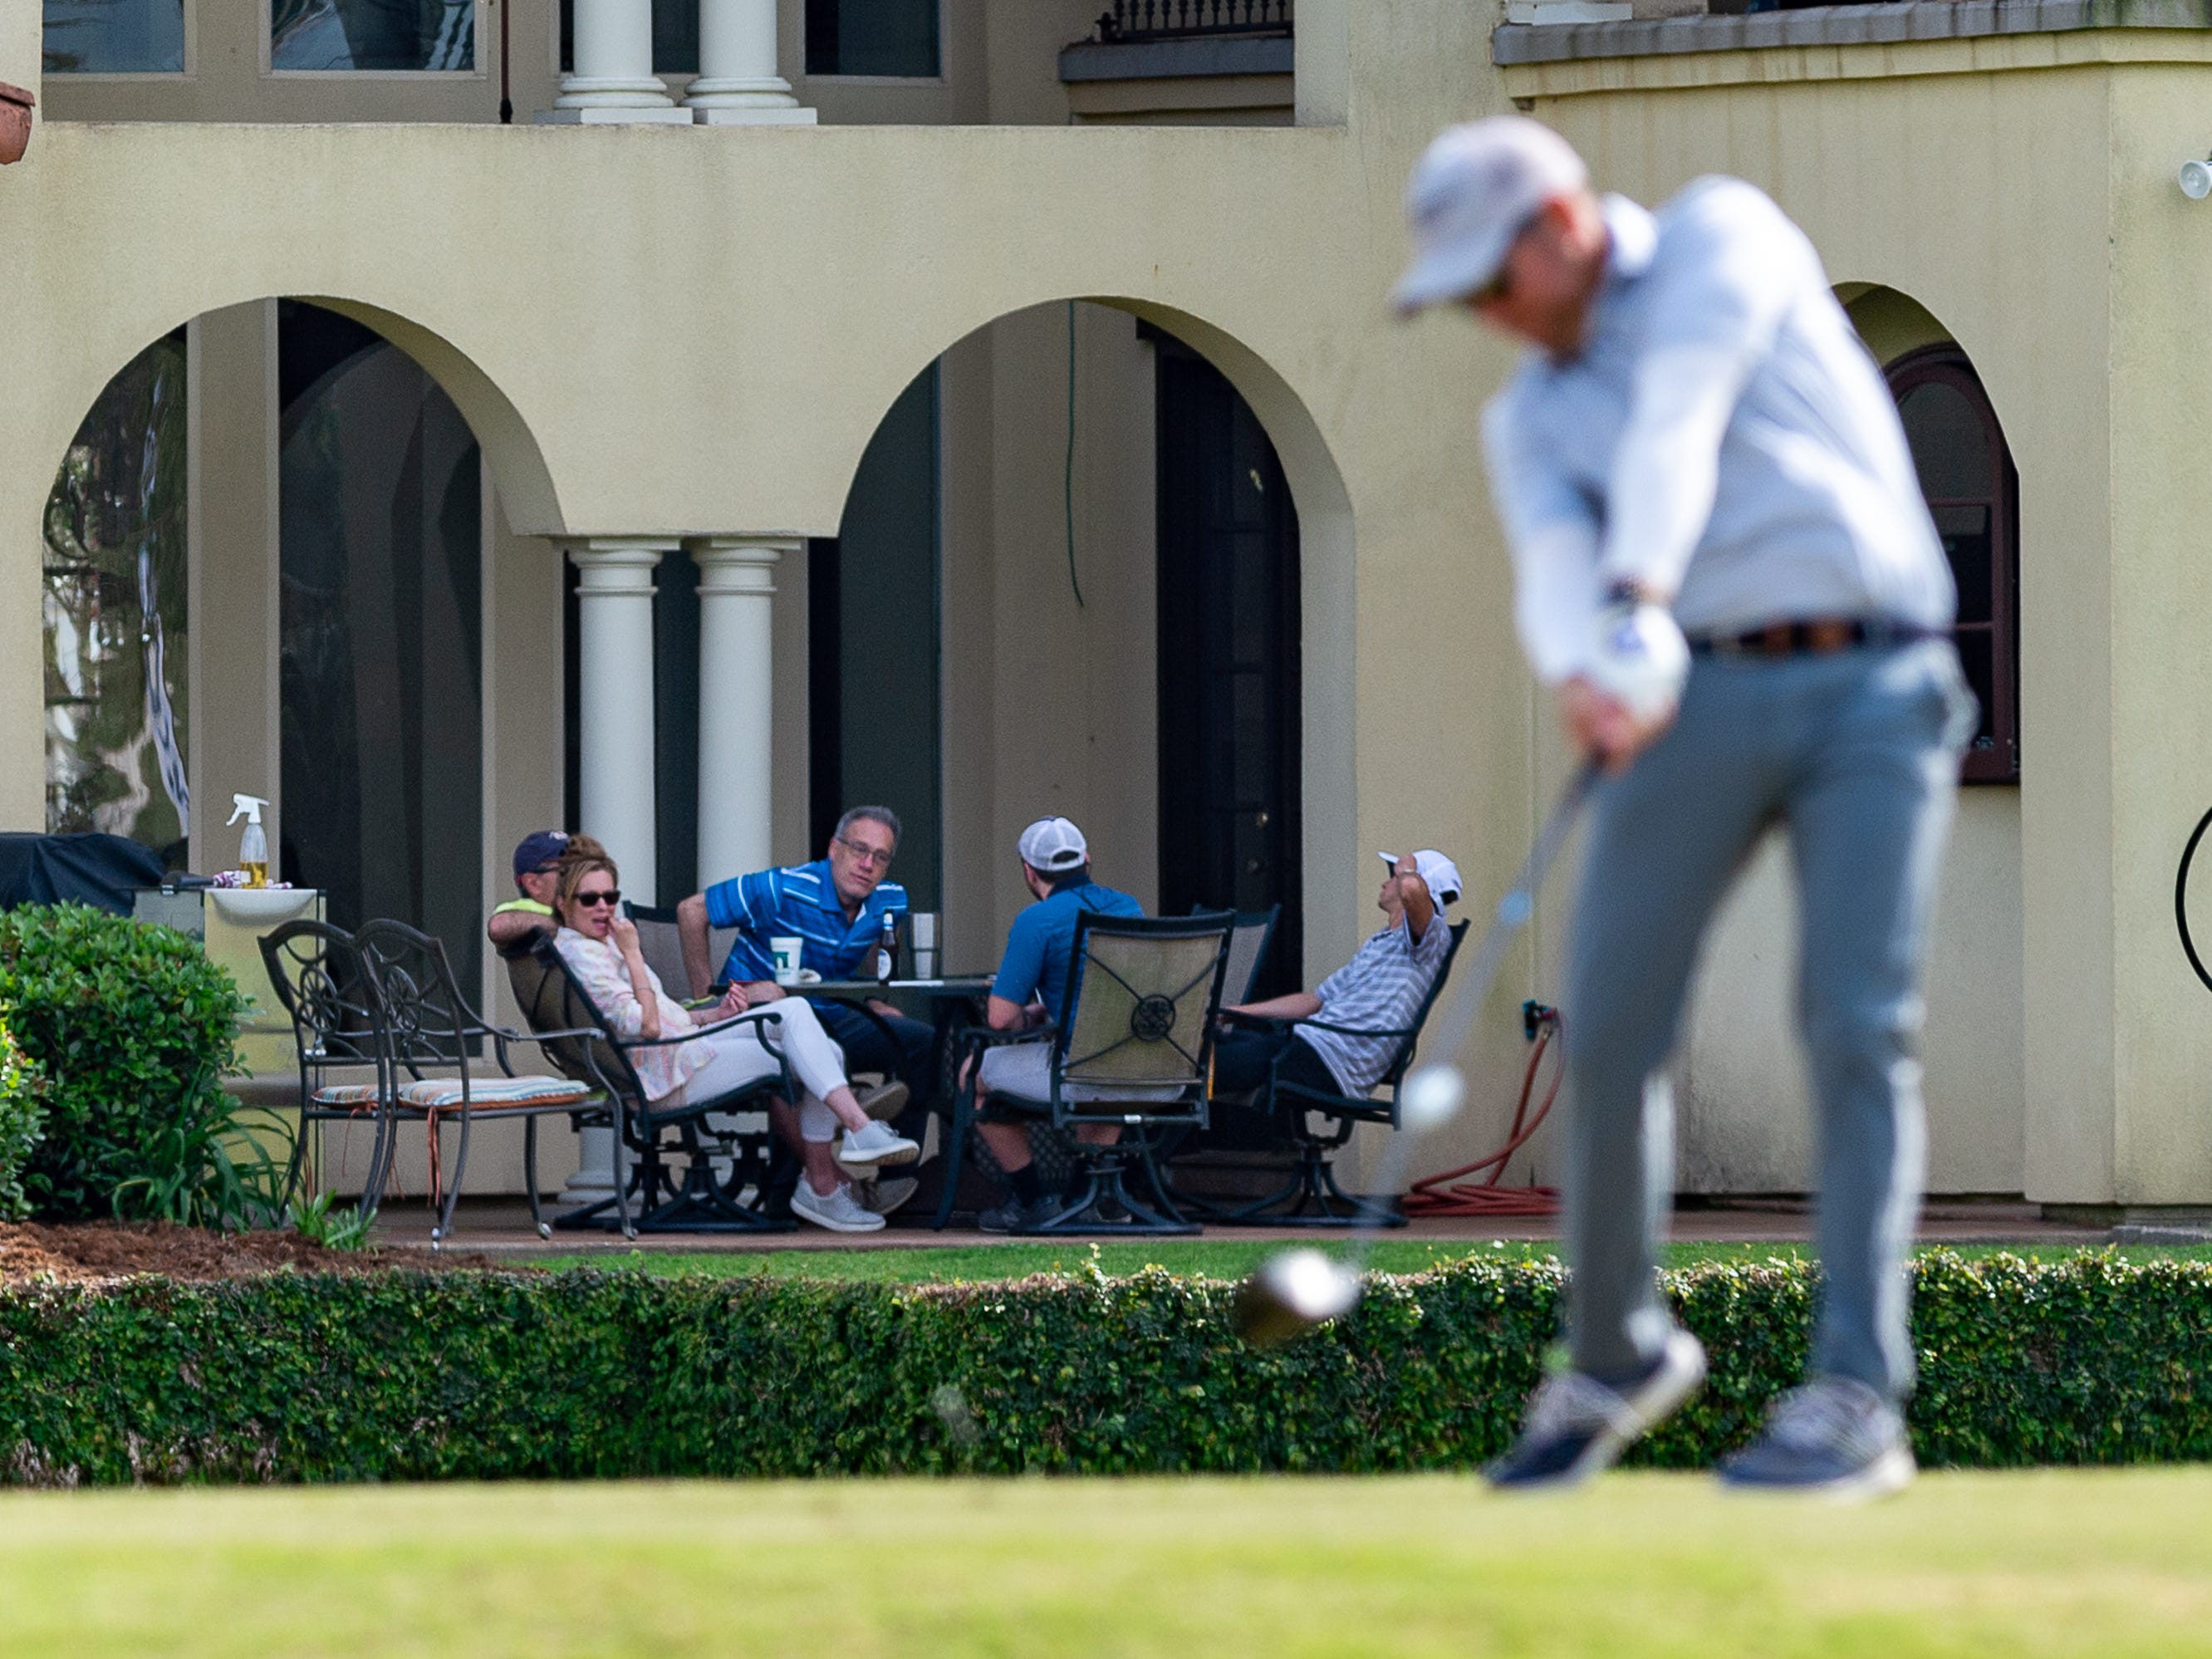 Residents at Le Triomphe during the third round of The Web.com Tour in Lafayette for the 2019 Chitimacha Louisiana Open at Le Triomphe. Saturday, March 23, 2019.